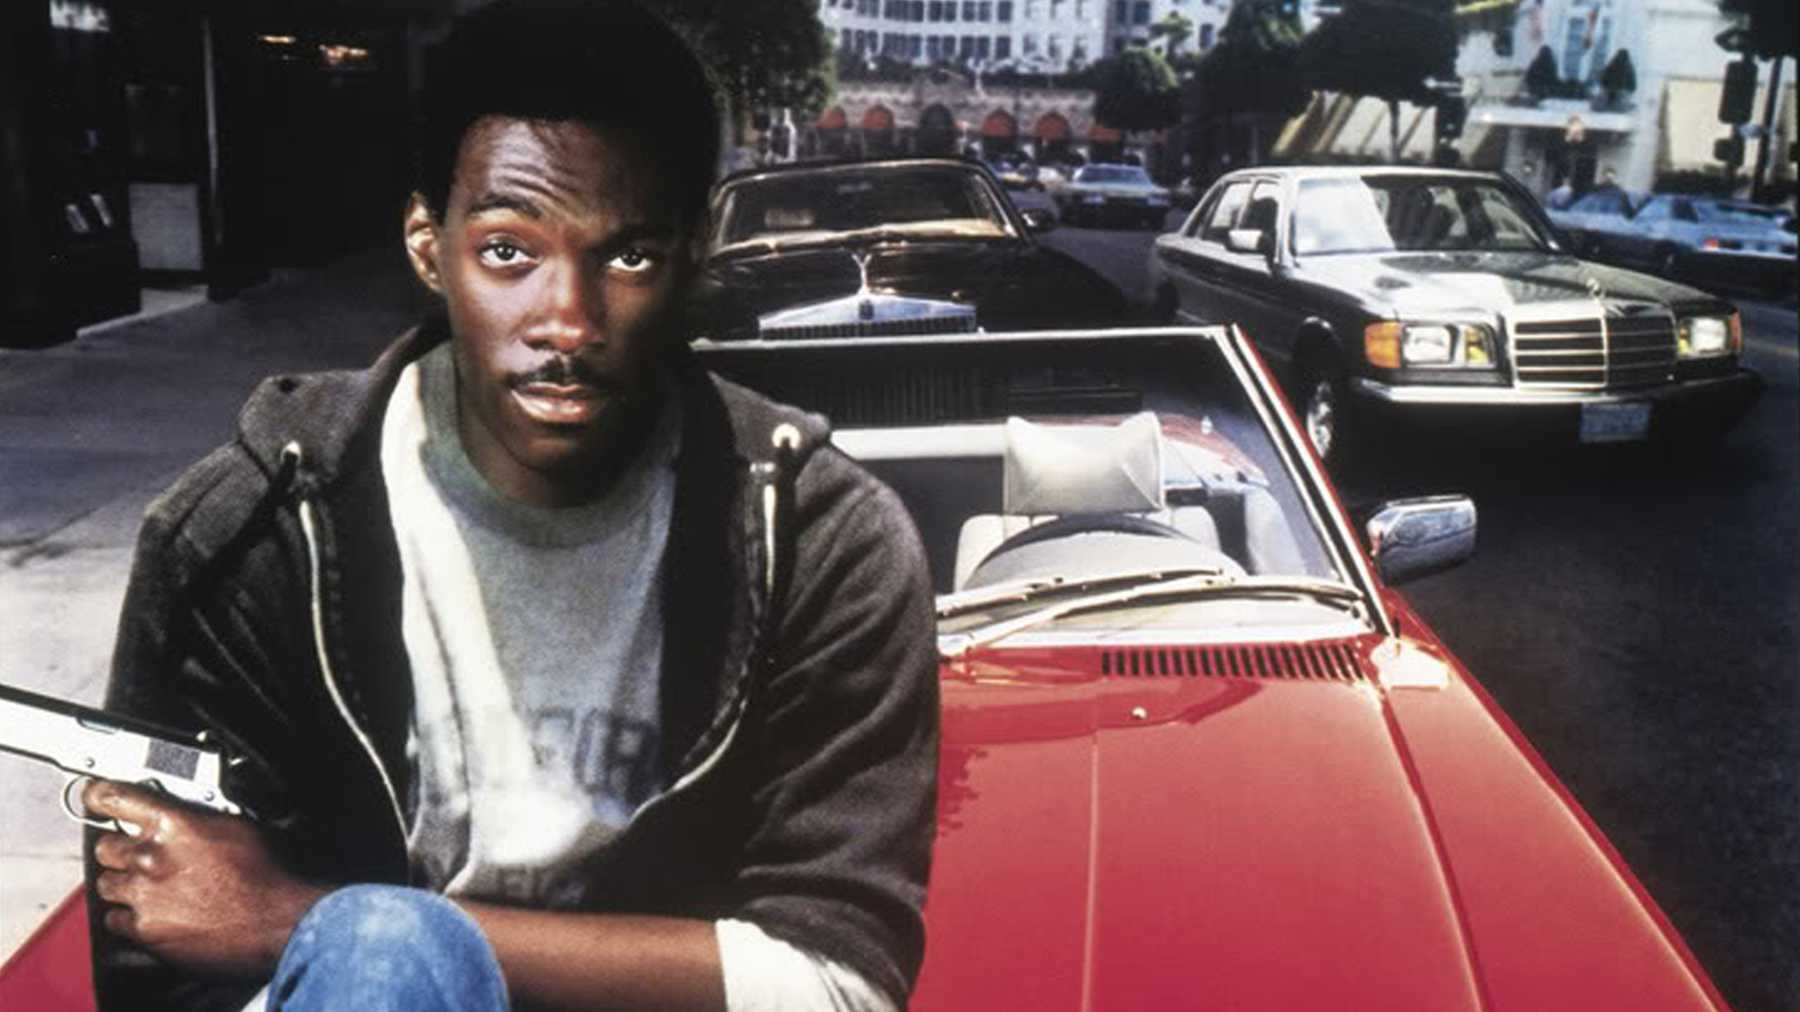 Image result for beverly hills cop movie images""